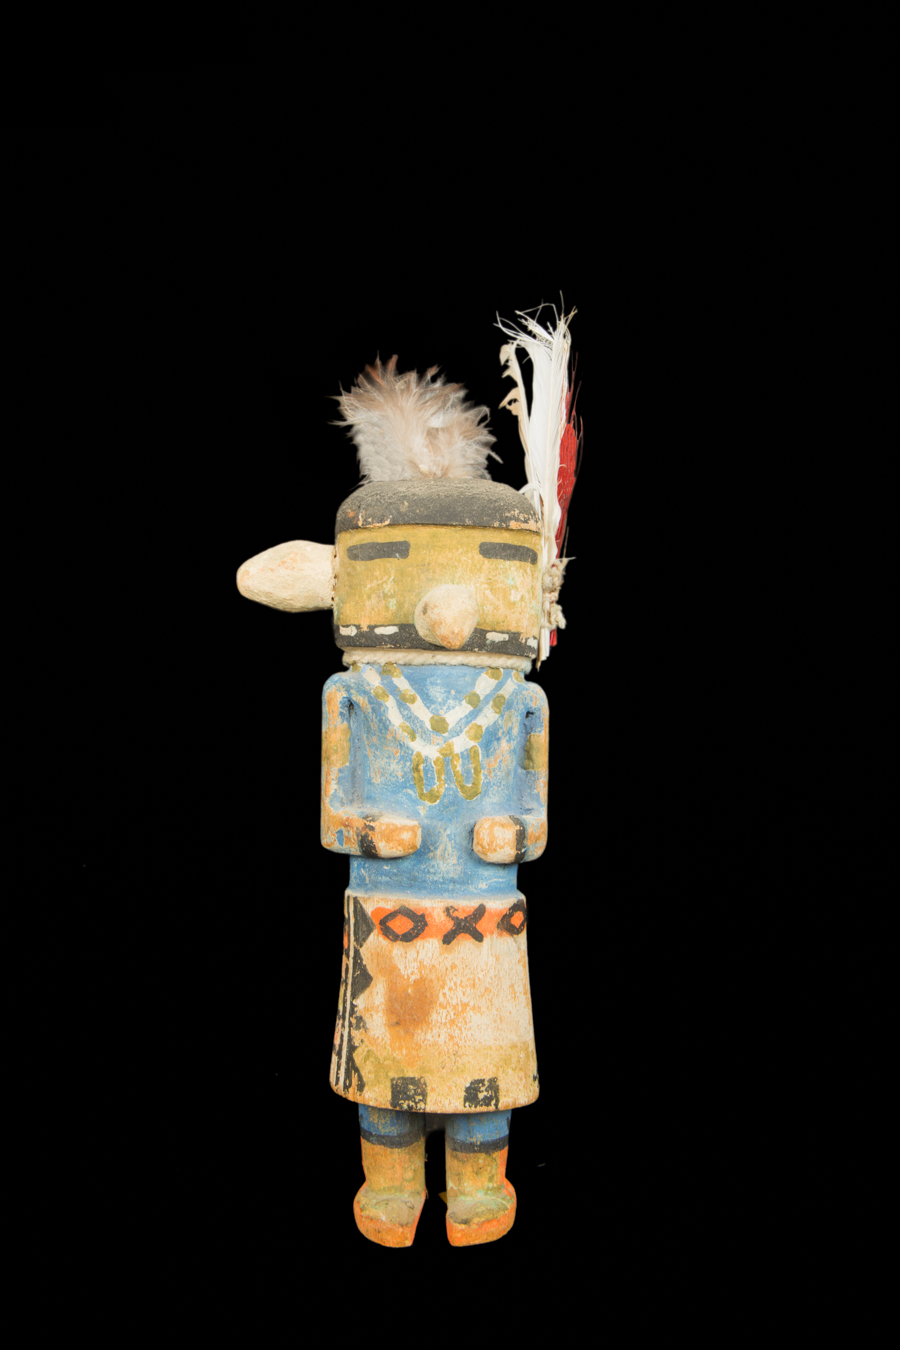 kachina27-220-Modifierp